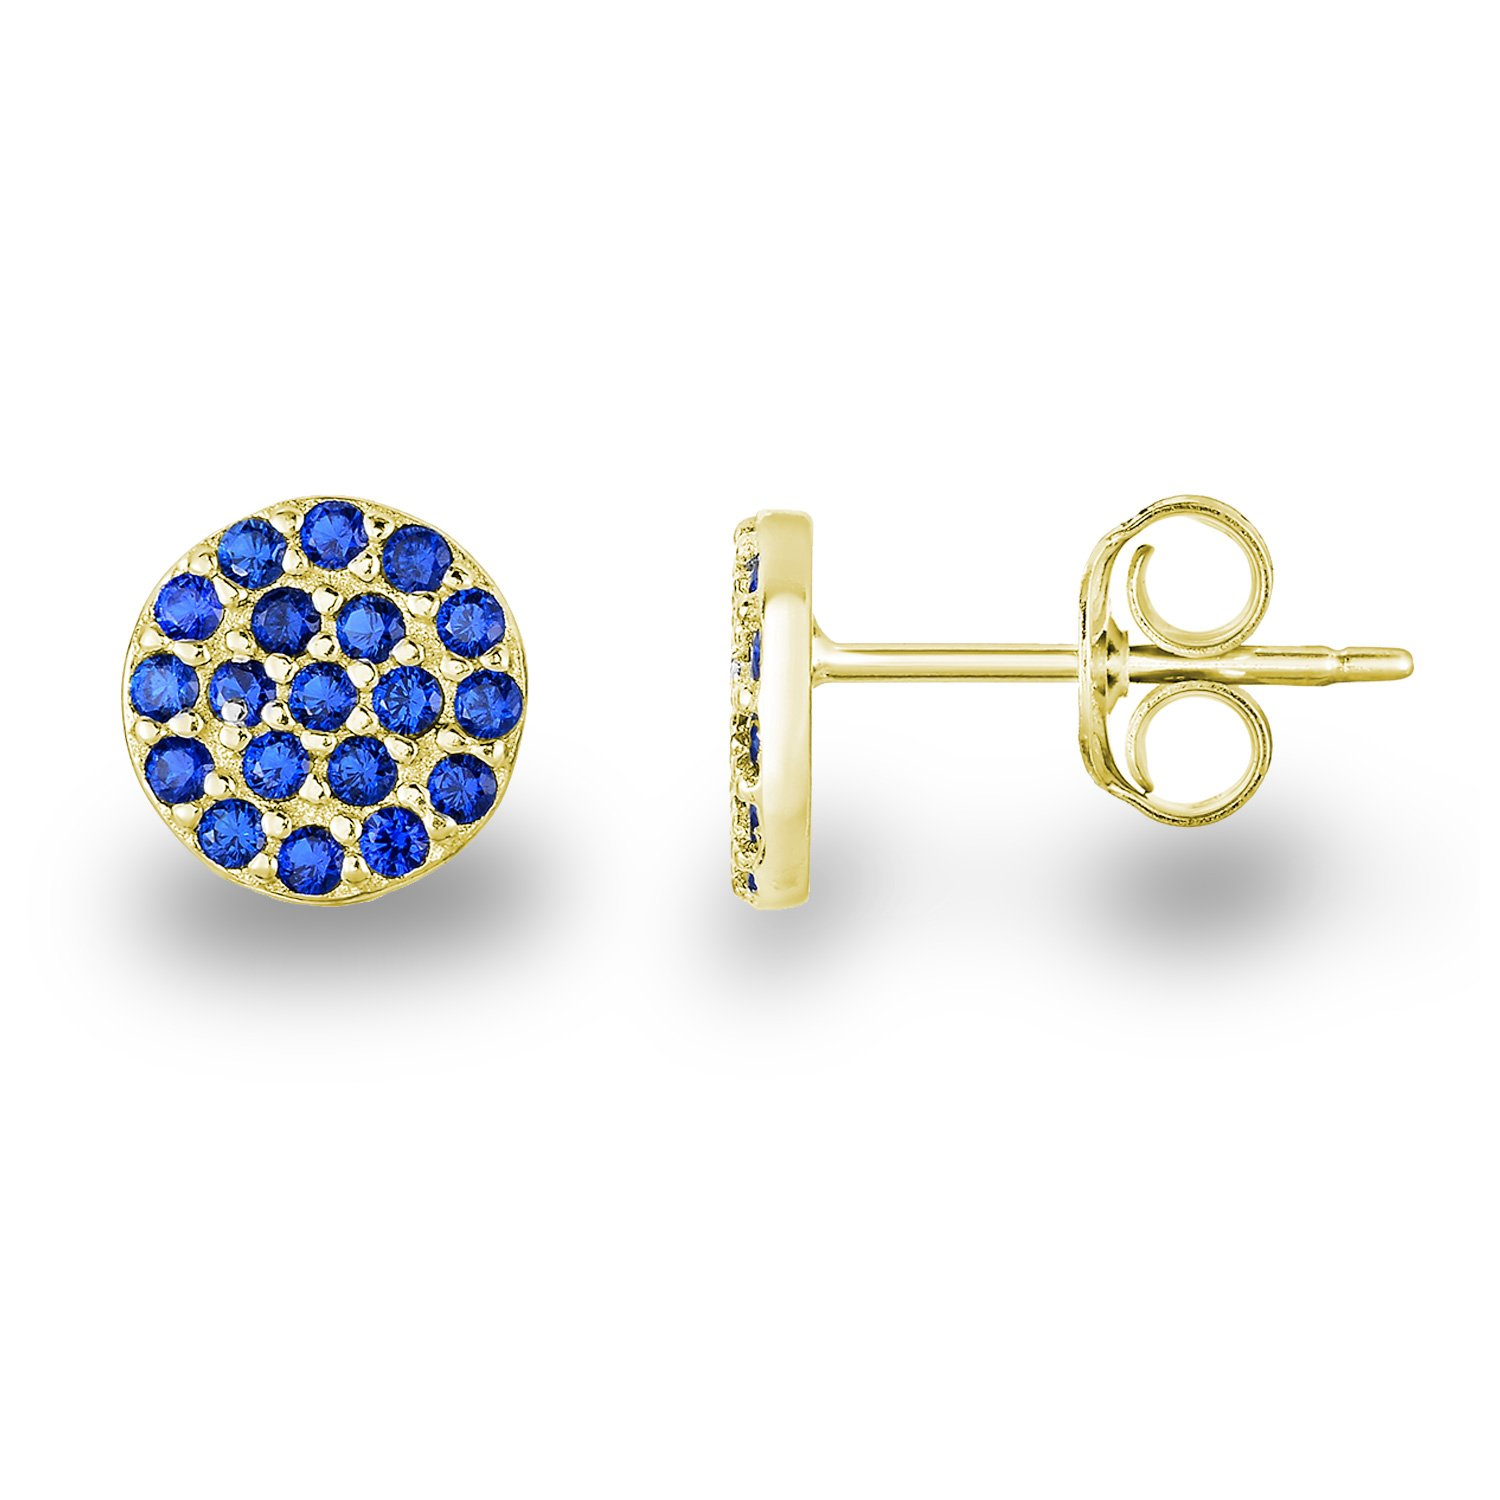 Yellow Gold-Plated Silver Cobalt Blue Simulated Quartz Circle Pave Disc Stud Earrings 6mm Diameter